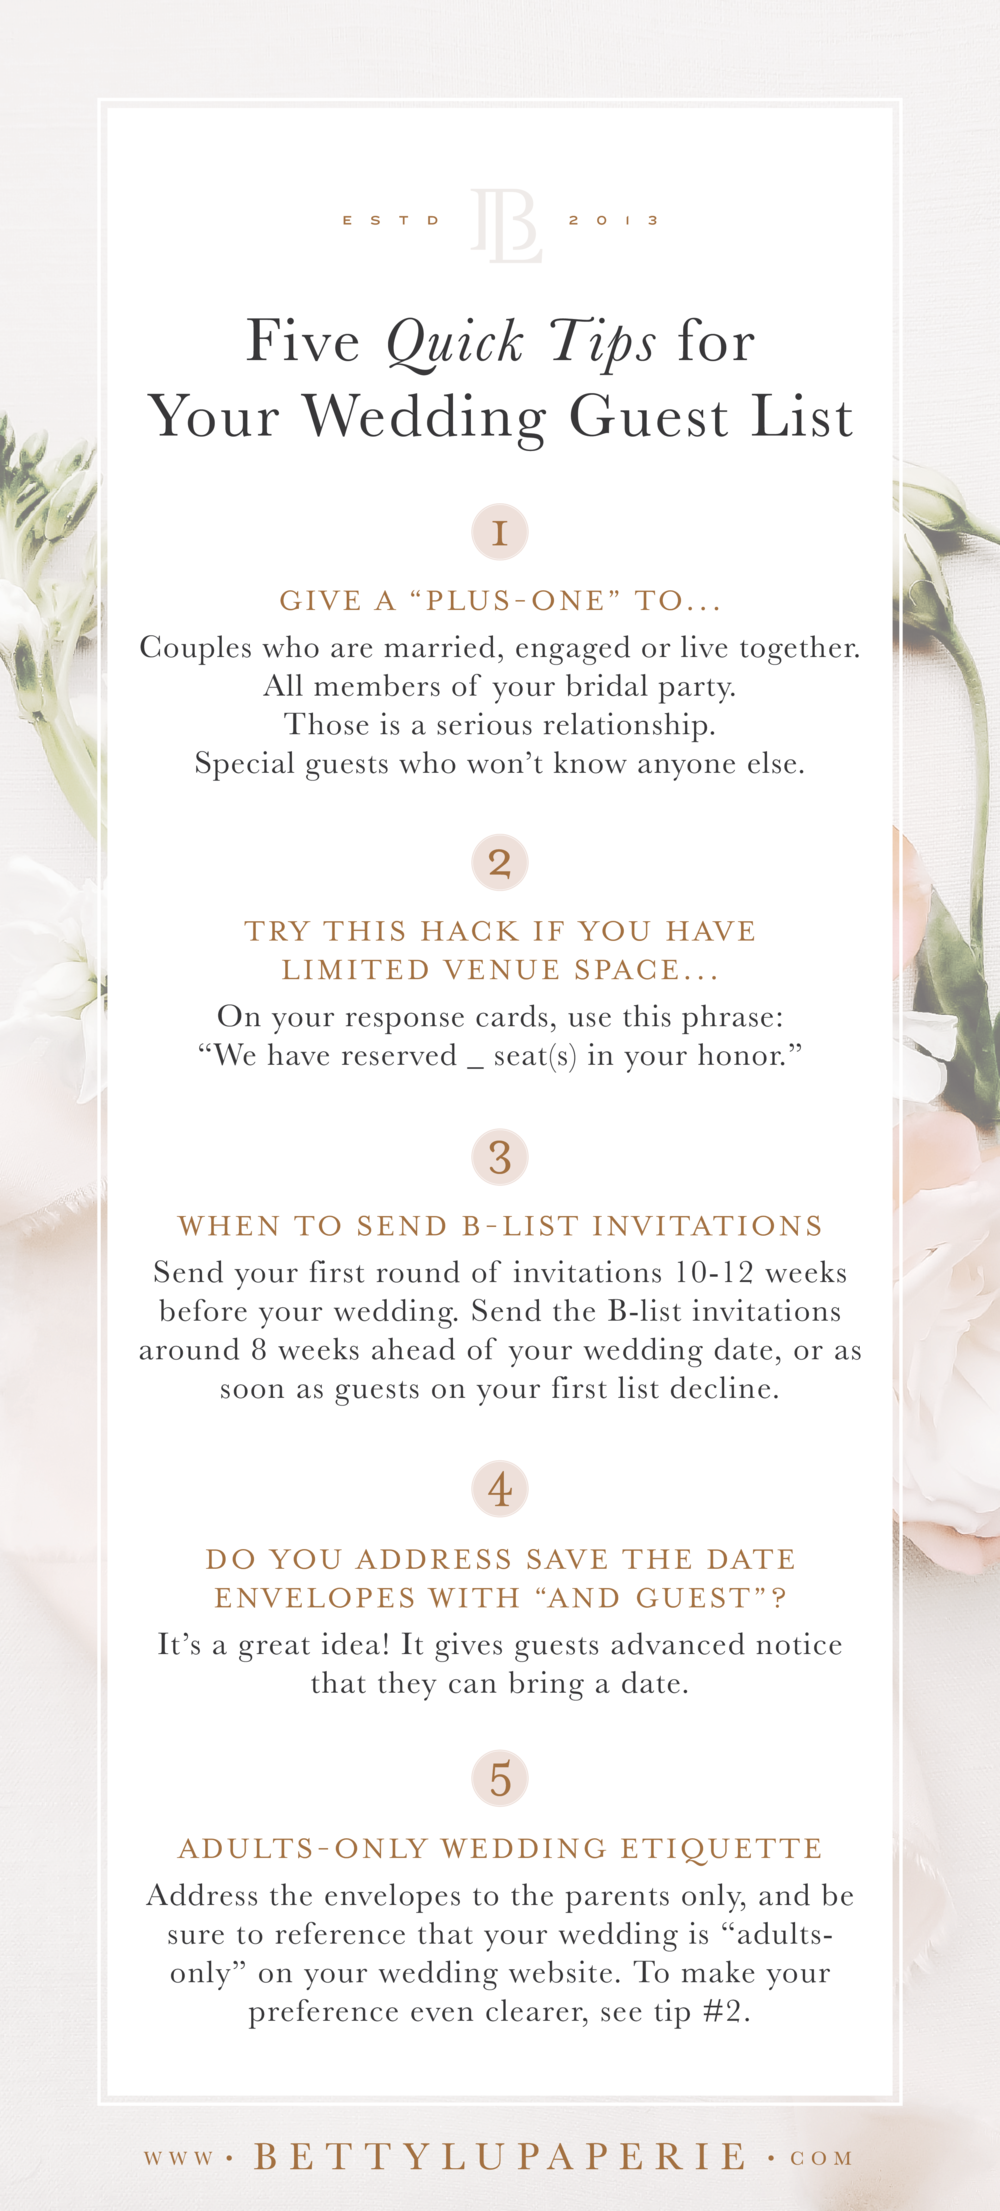 Wedding Guest List Etiquette.png